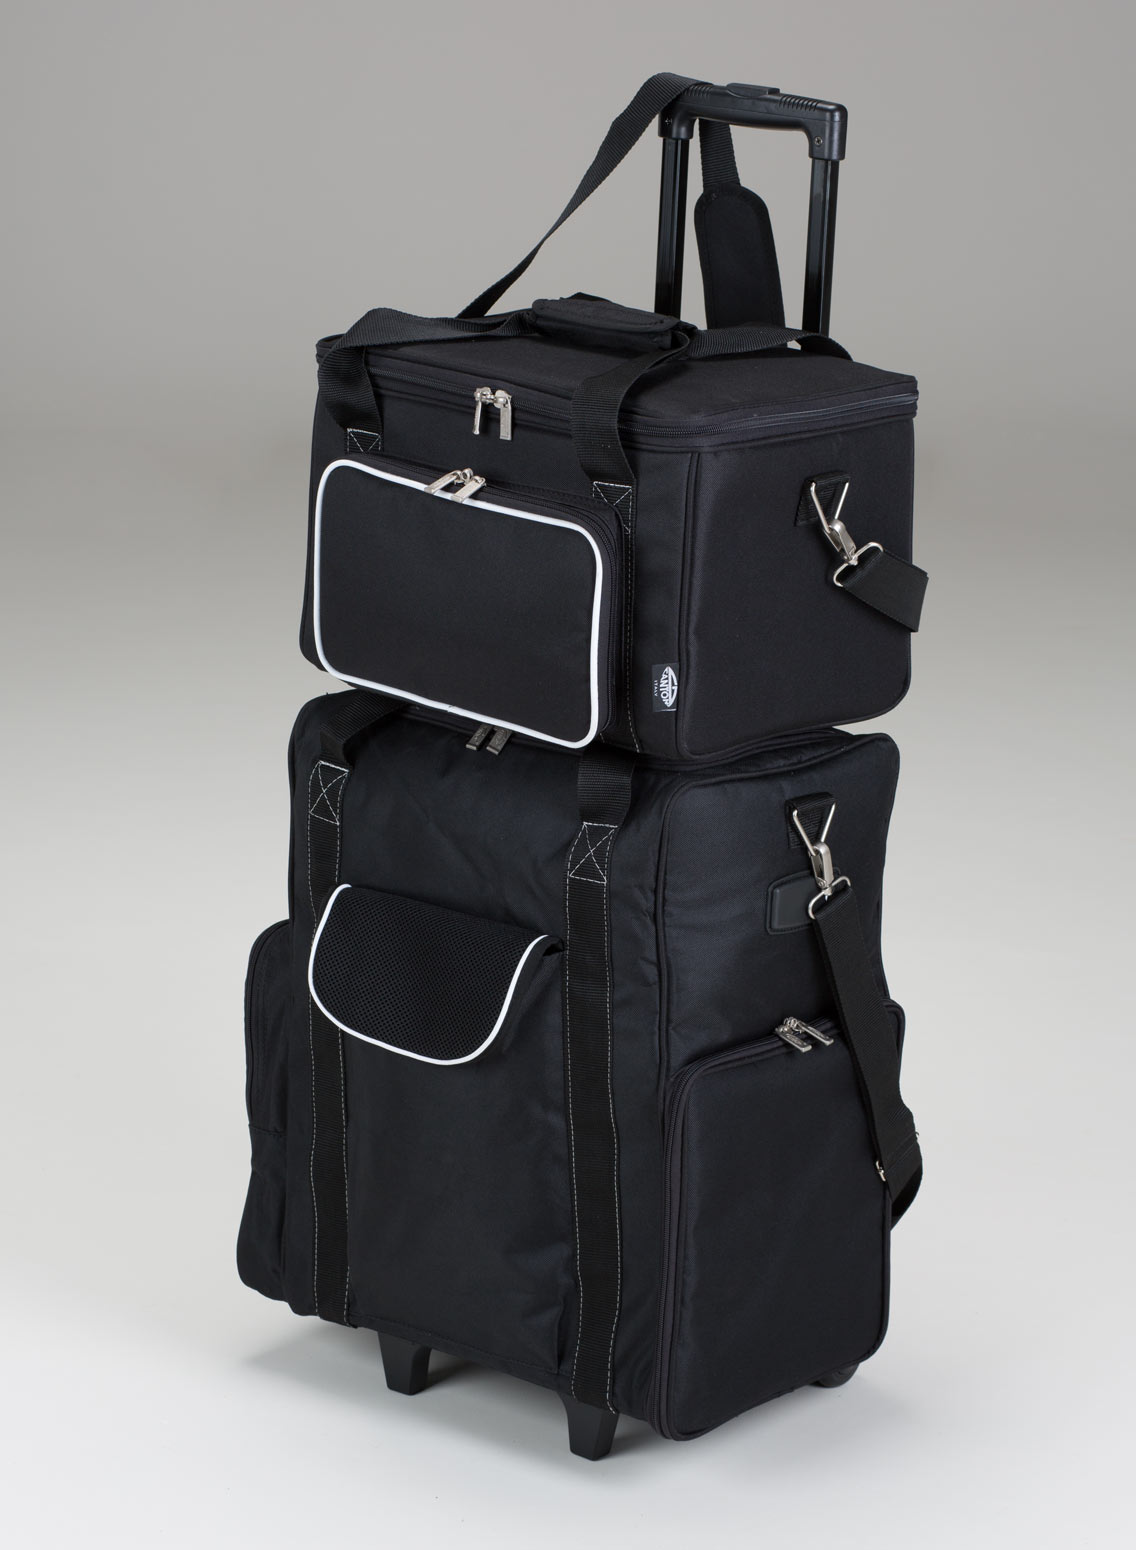 Makeup Bag With Trolley For